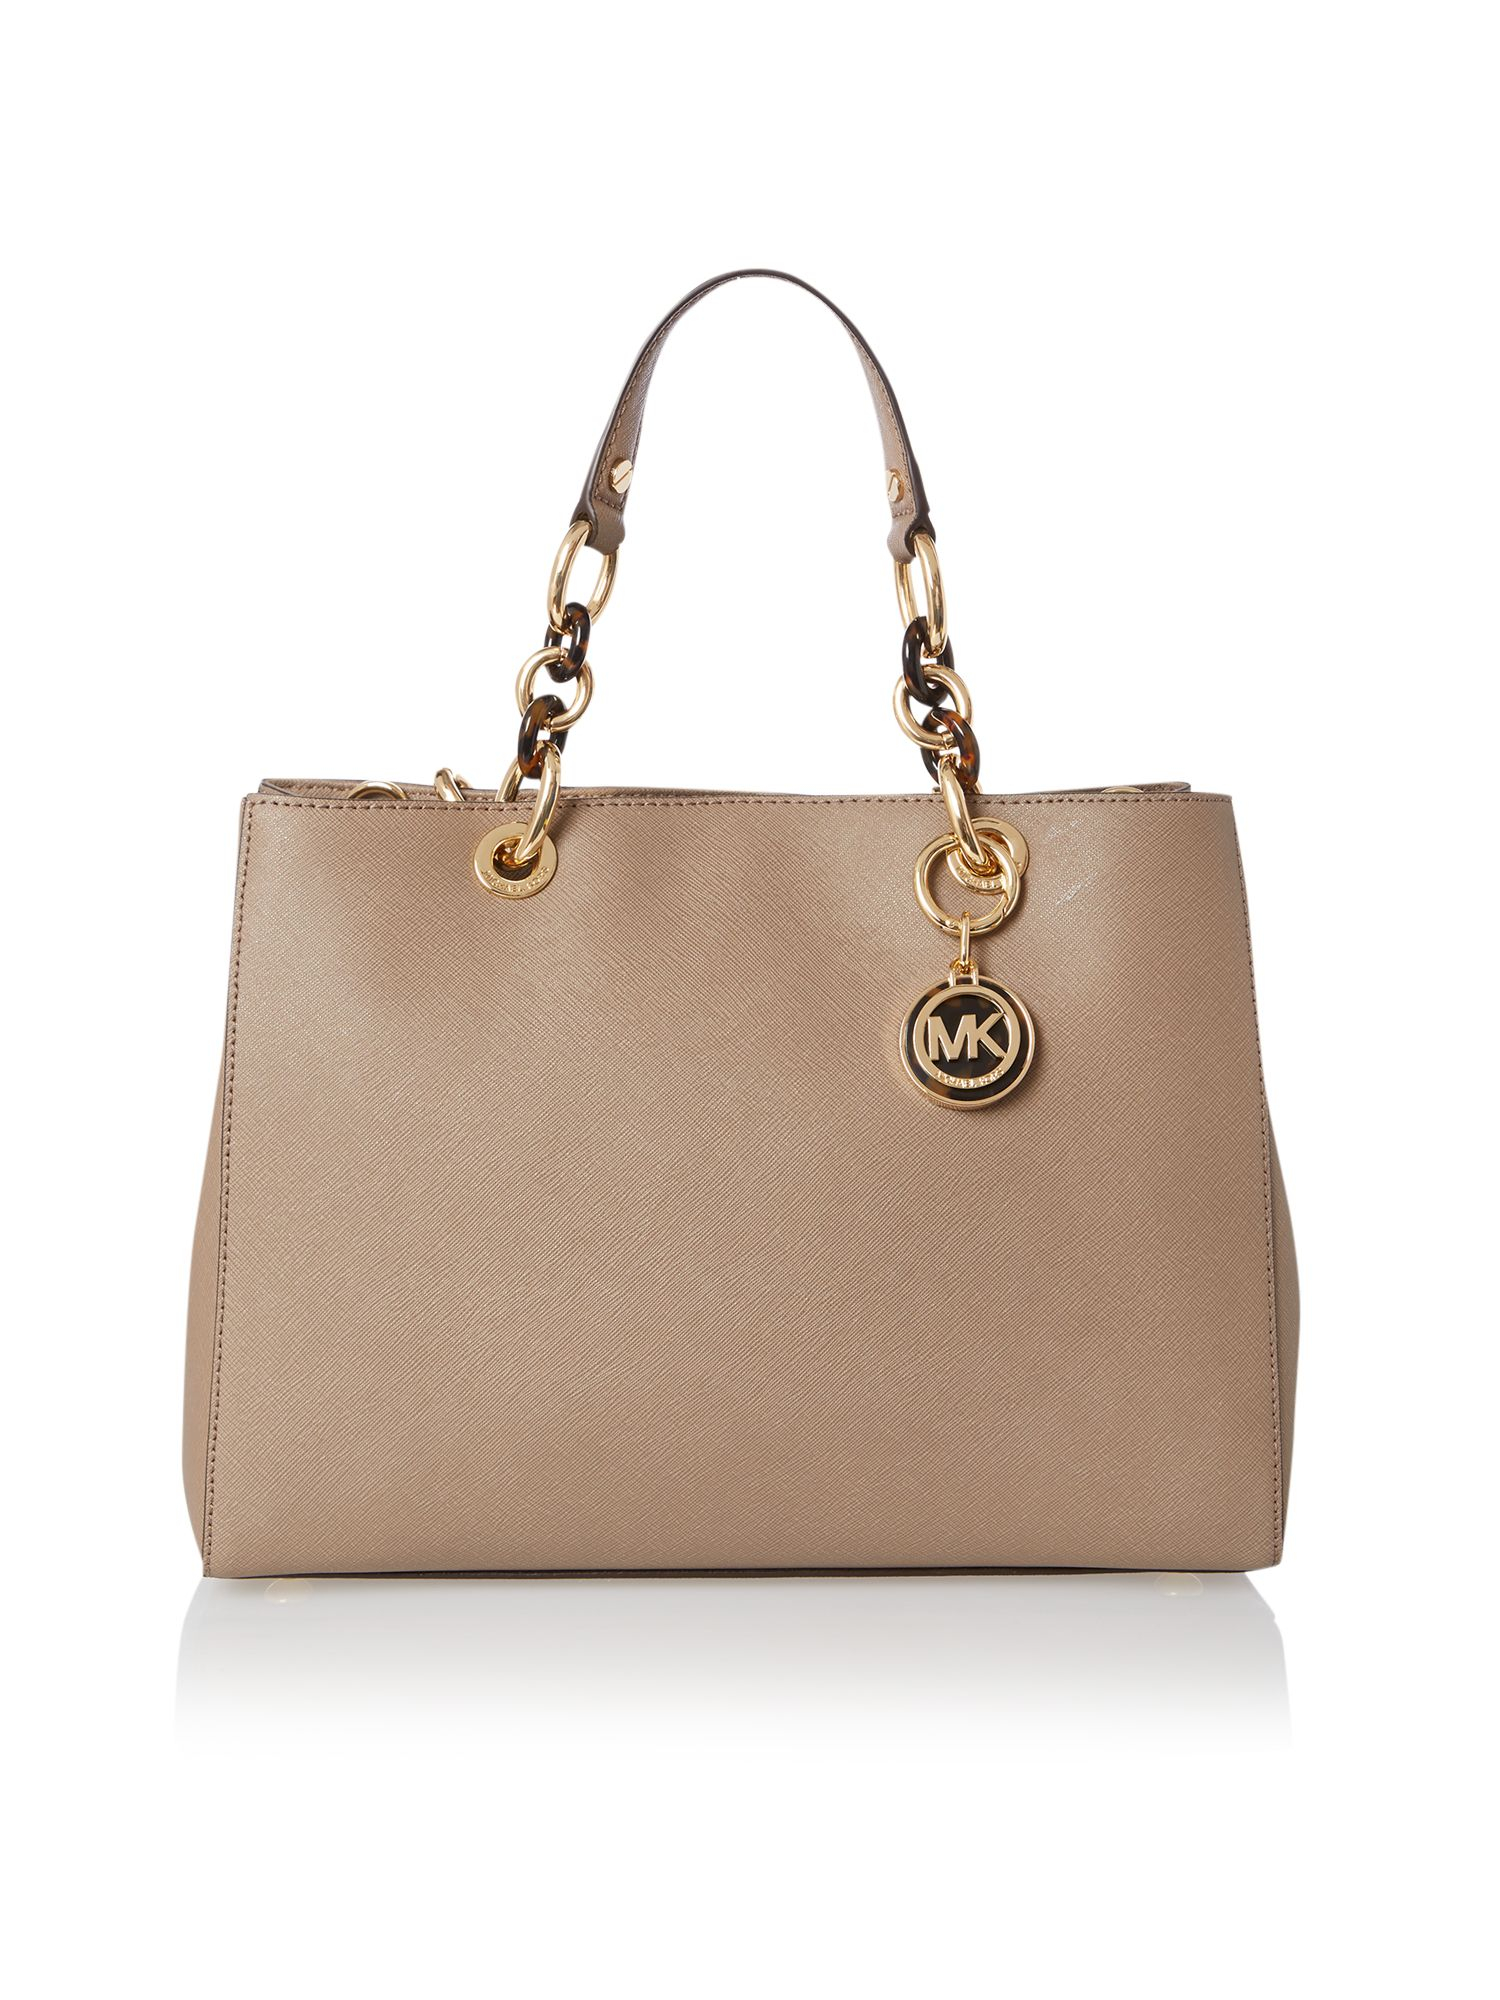 d92651752f ... best price michael kors cynthia sand tote bag in natural lyst 6f6b6  3c6fb